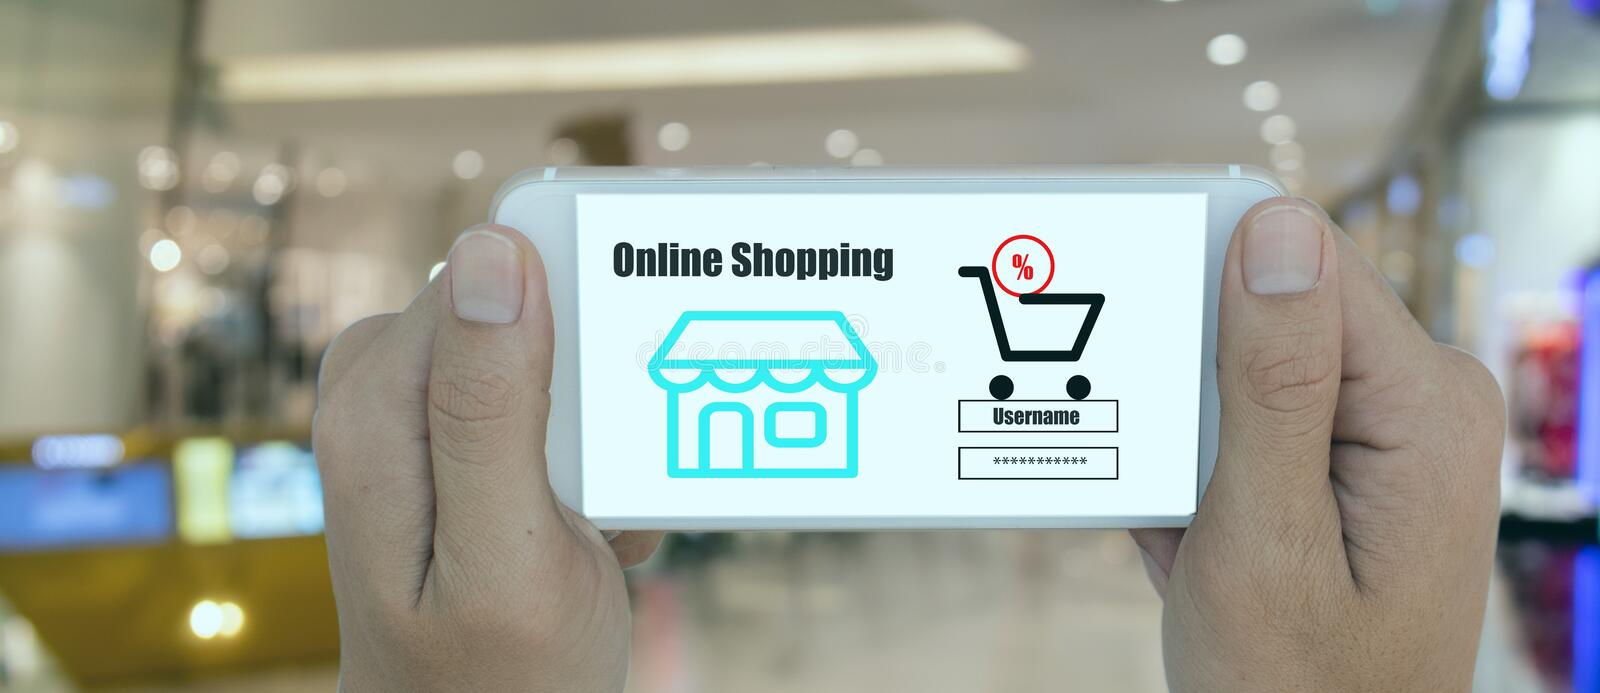 Smart retail technology with online shopping concept, customer use password try to log in web store in the retail to receive infor royalty free stock photo